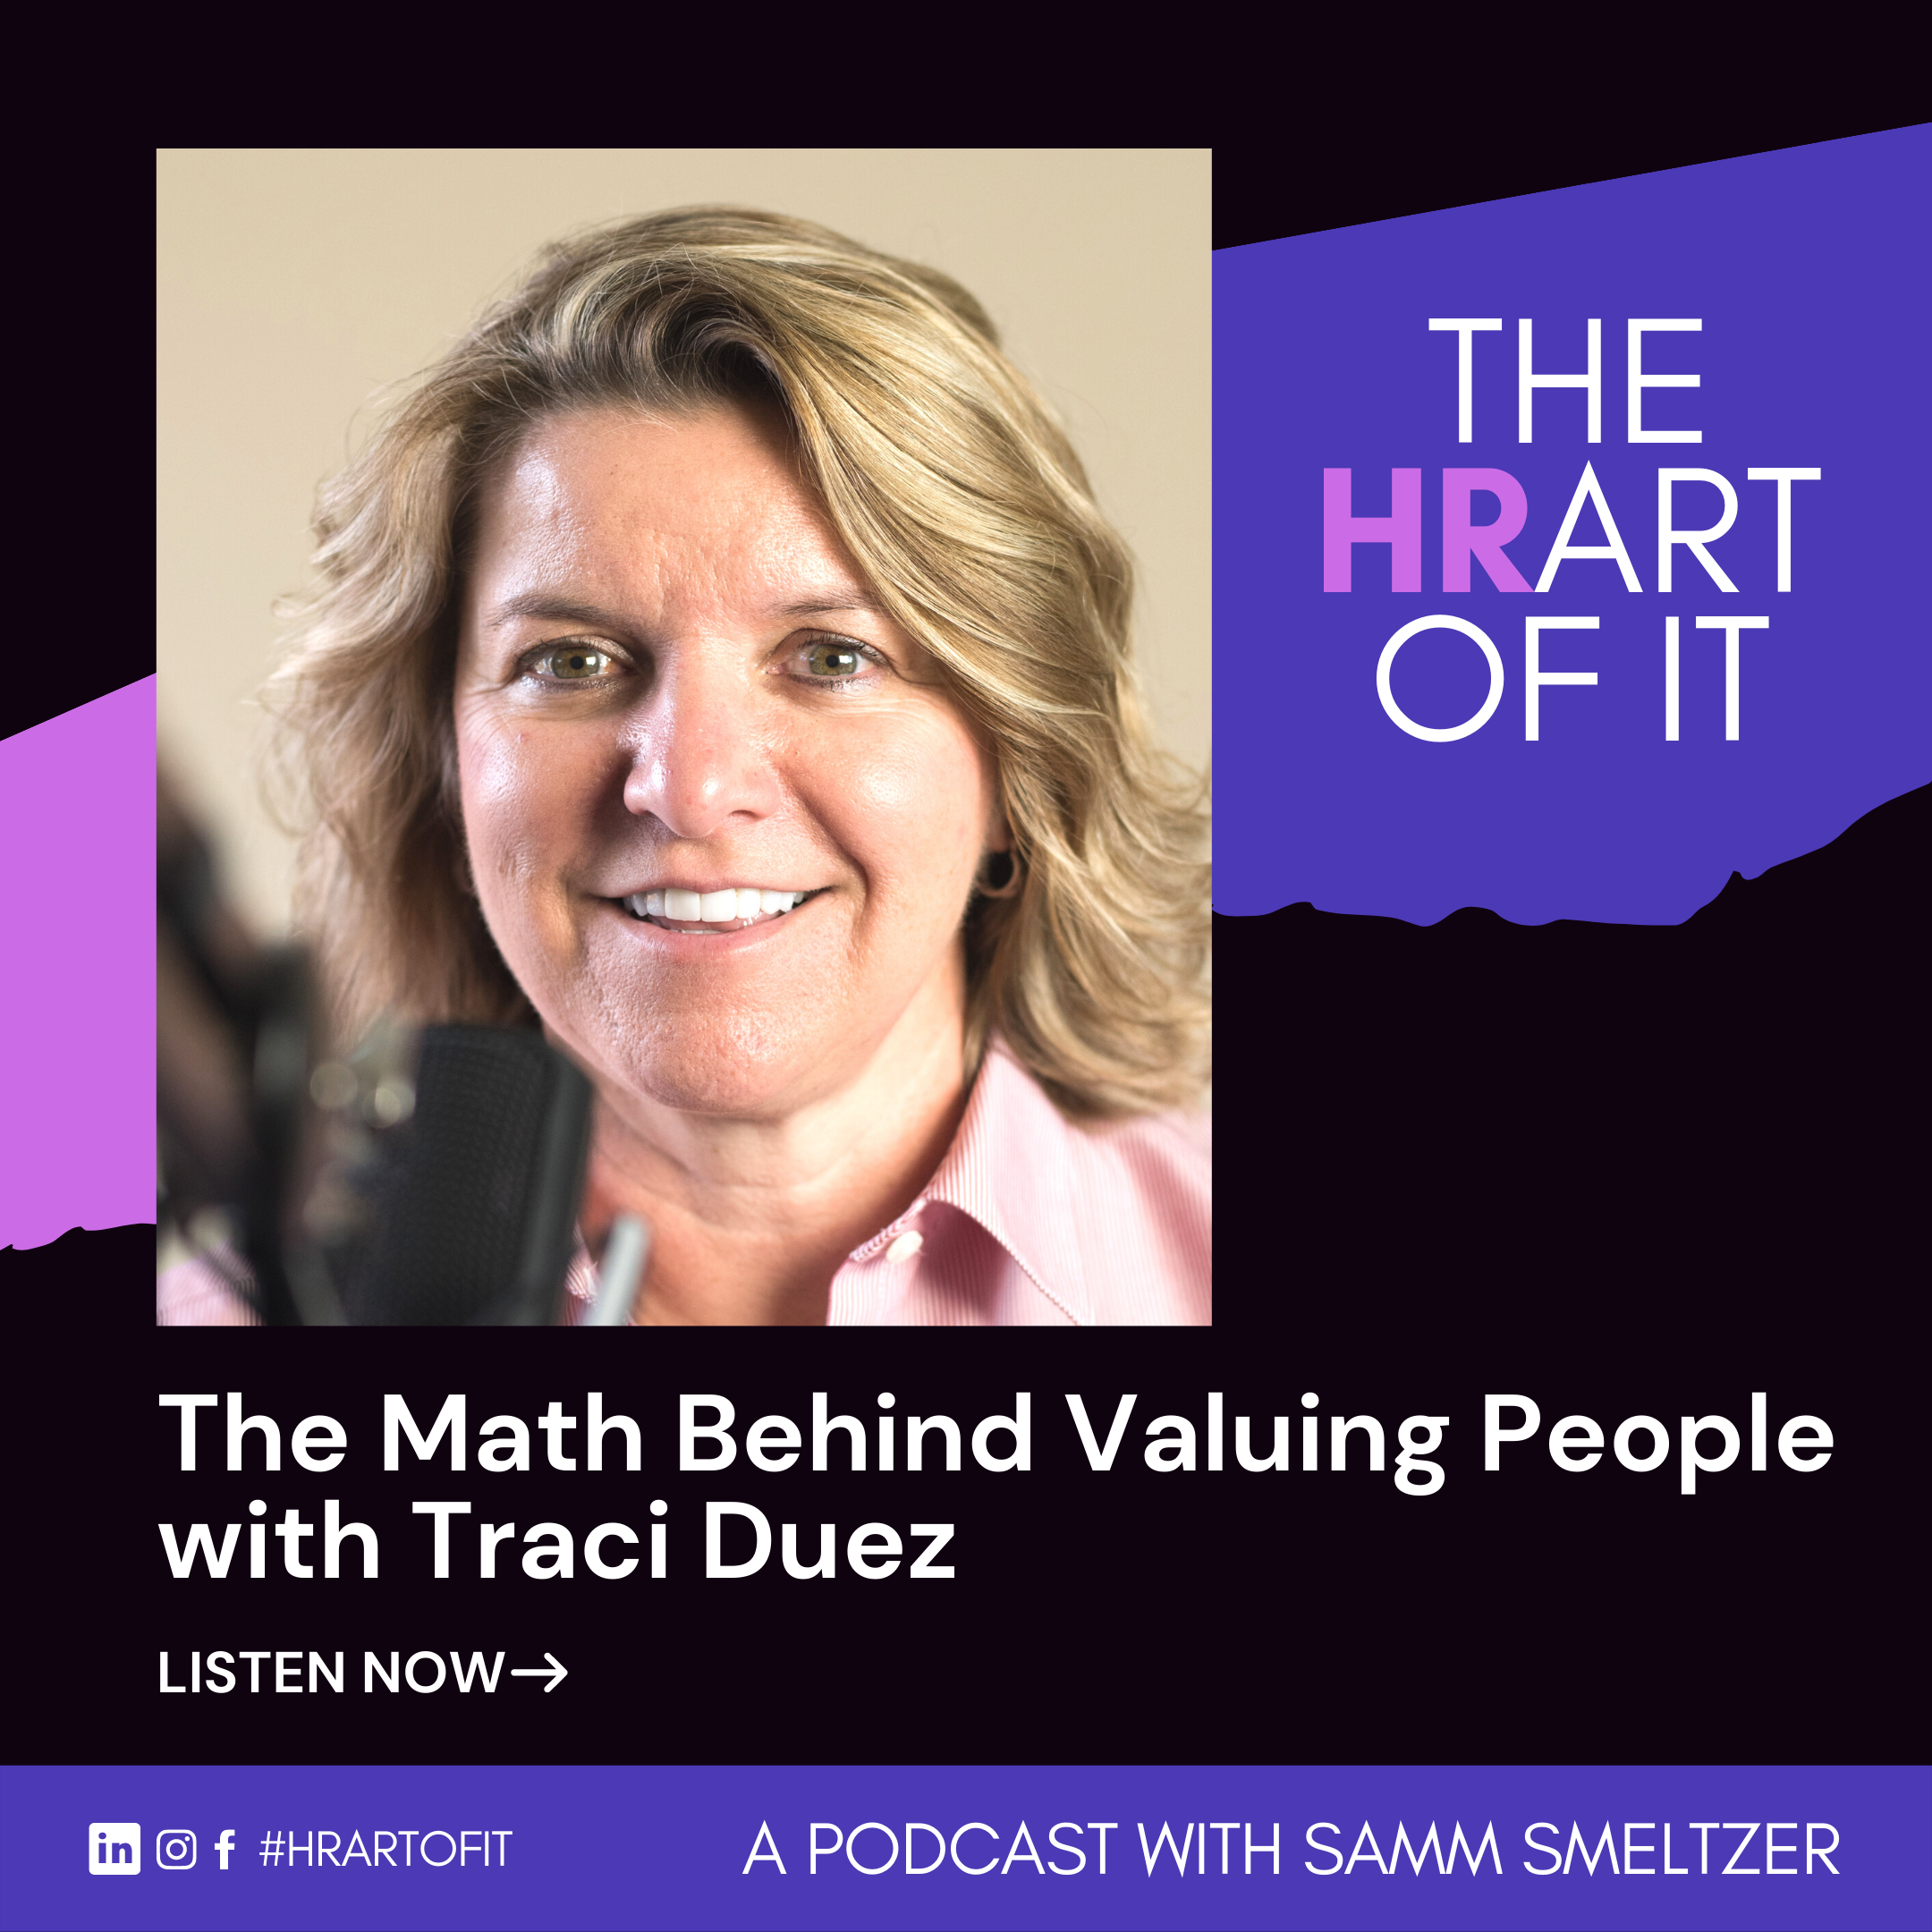 The Math Behind Valuing People with Traci Duez